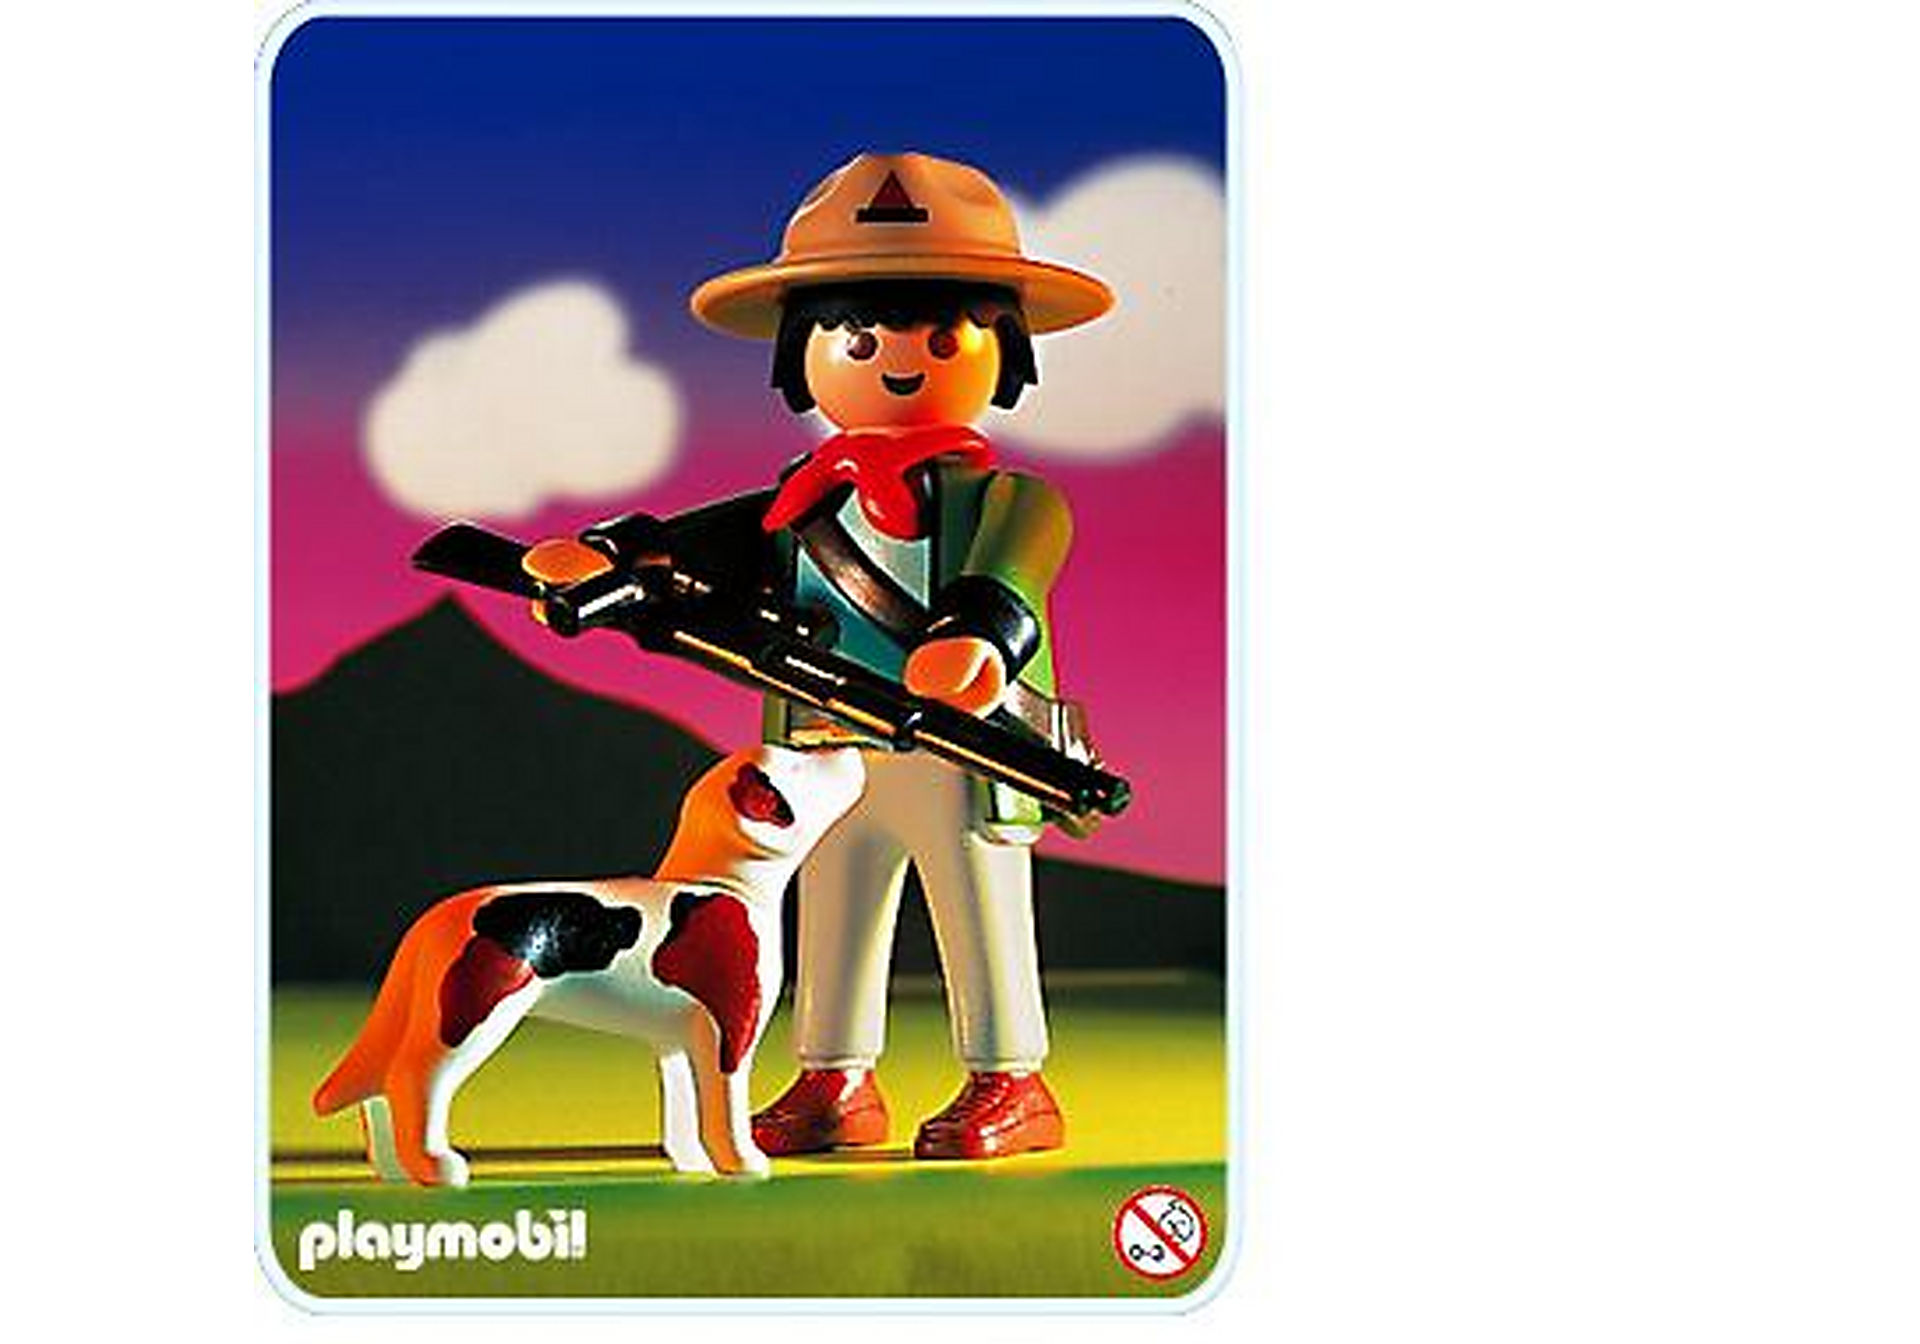 http://media.playmobil.com/i/playmobil/3828-A_product_detail/Garde forestier